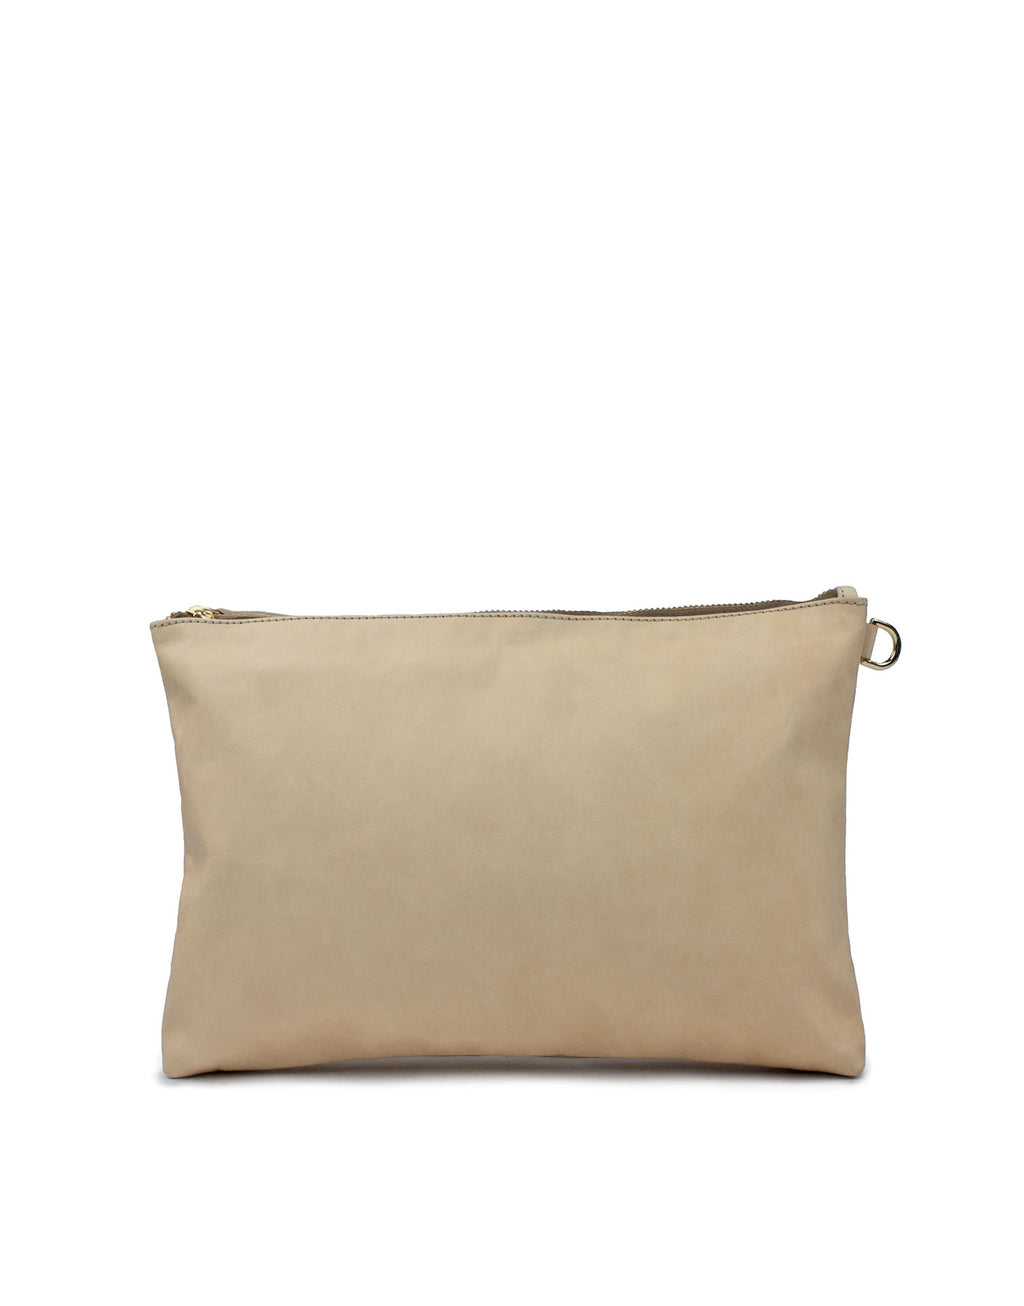 Natural vegetable tanned leather clutch, only one available at the moment!